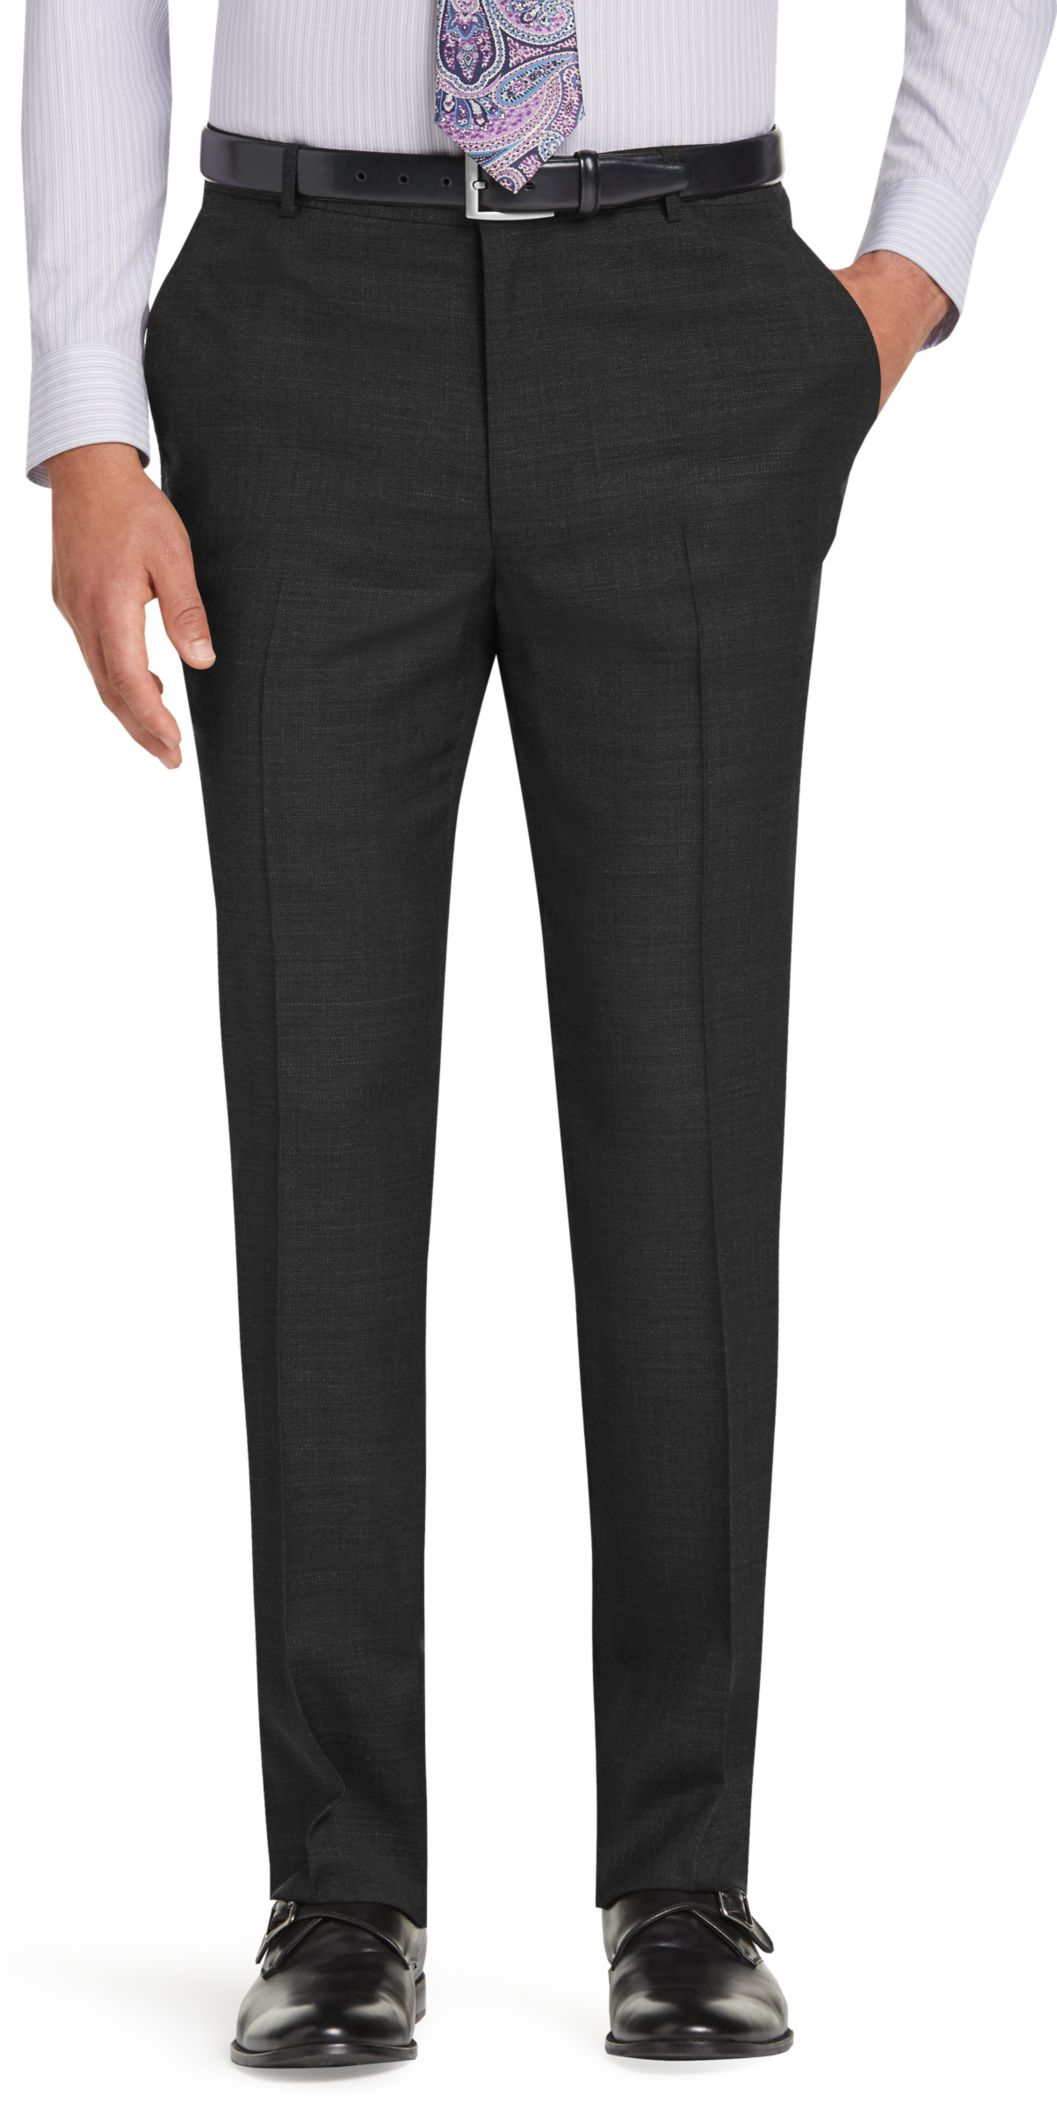 Traveler Collection Tailored Fit Flat Front Washable Wool Dress Pants (Charcoal)